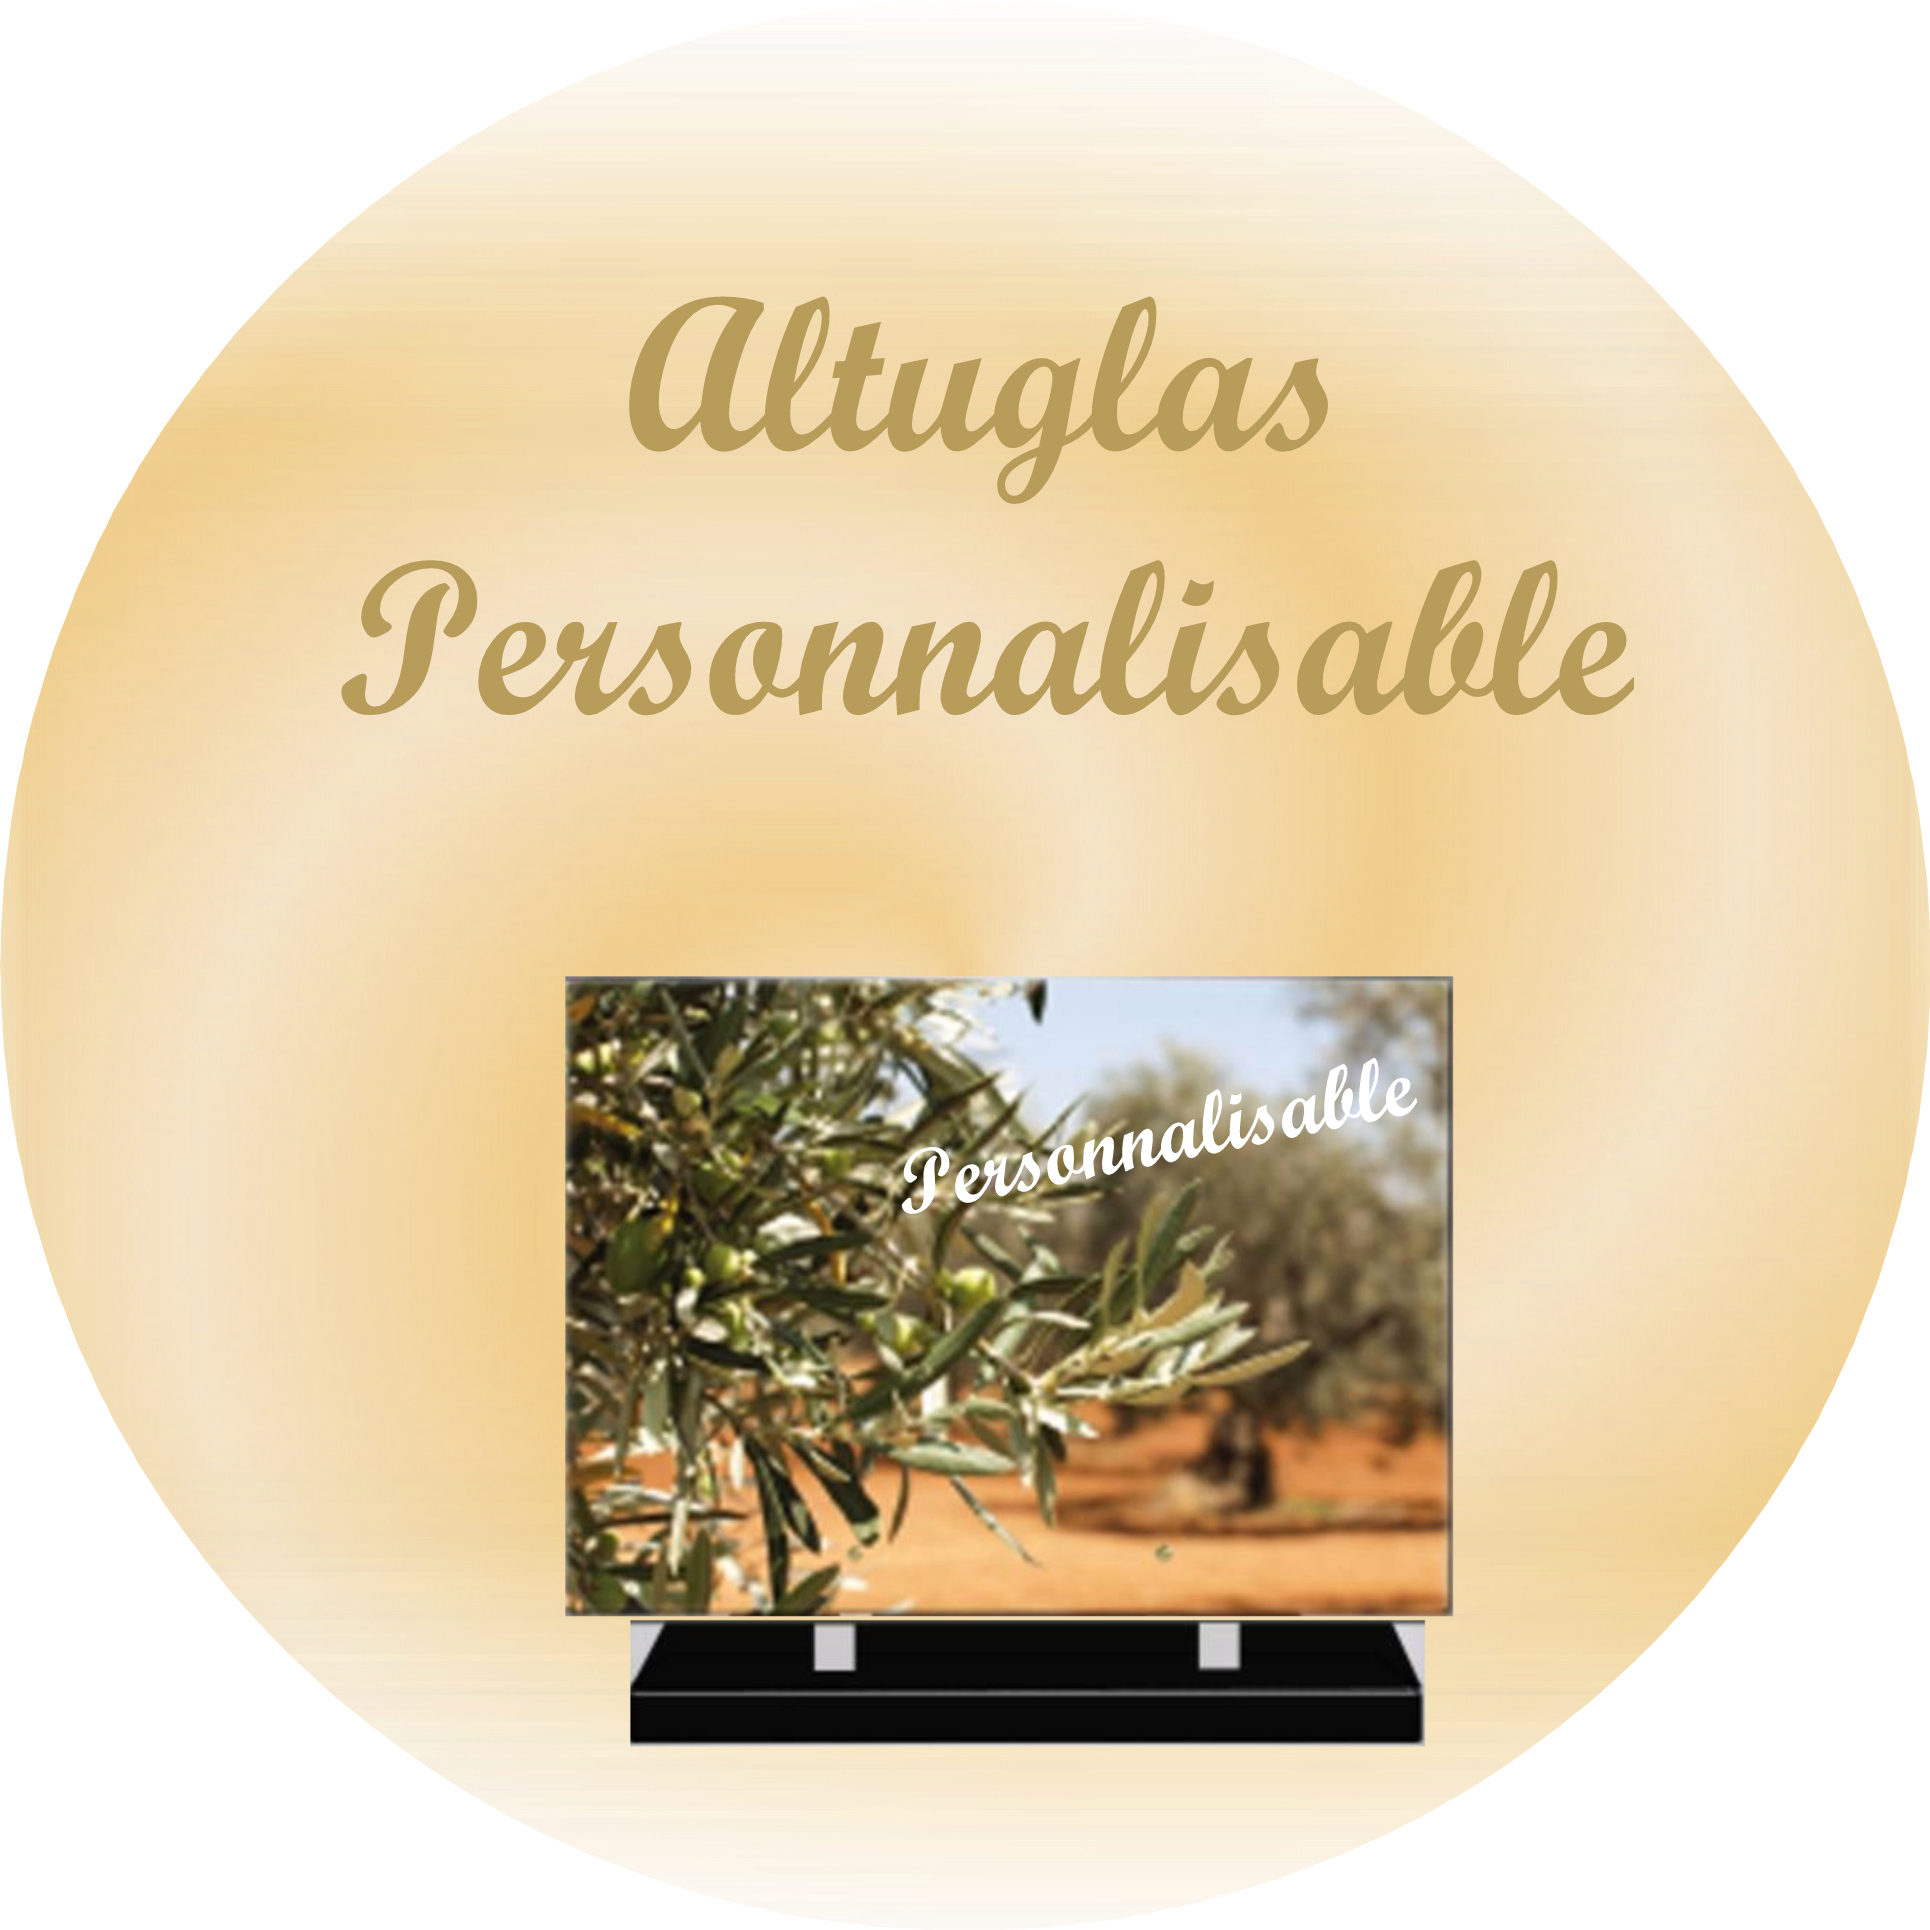 PLAQUES FUNERAIRES MODERNES PERSONNALISABLES RECTANGLE YVRANDES